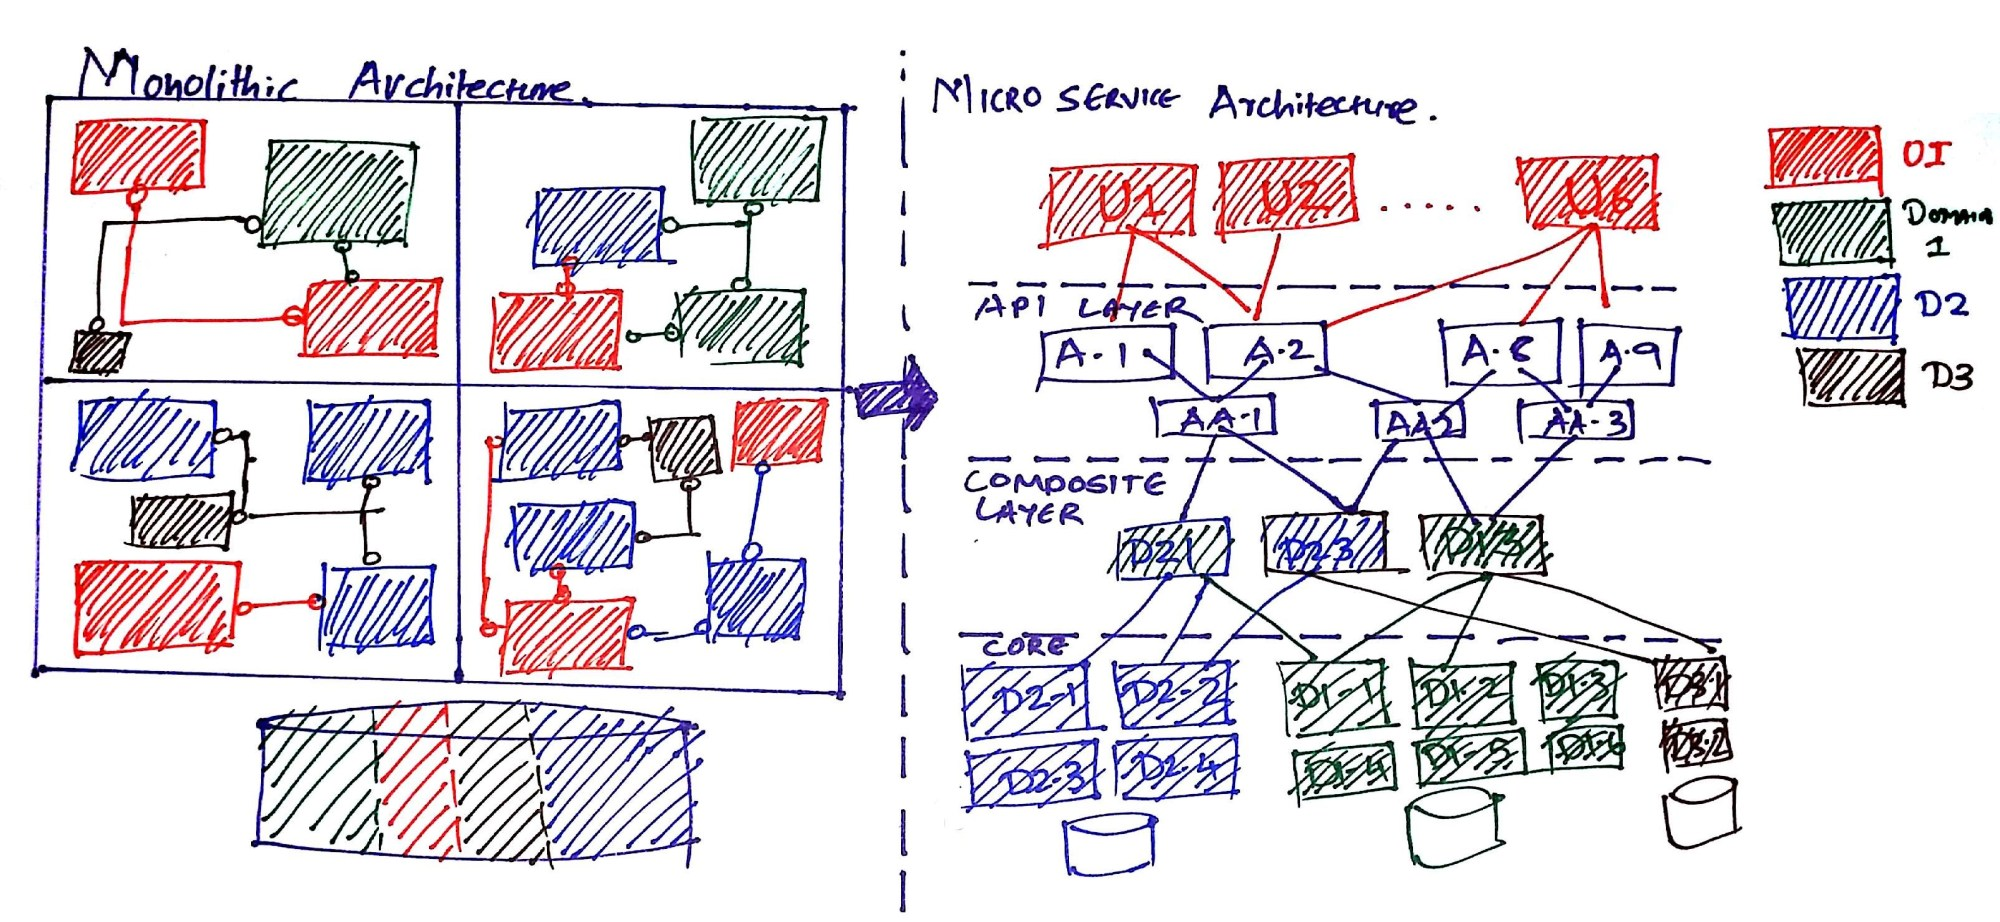 hight resolution of transforming monolithic architecture into microservices architecture